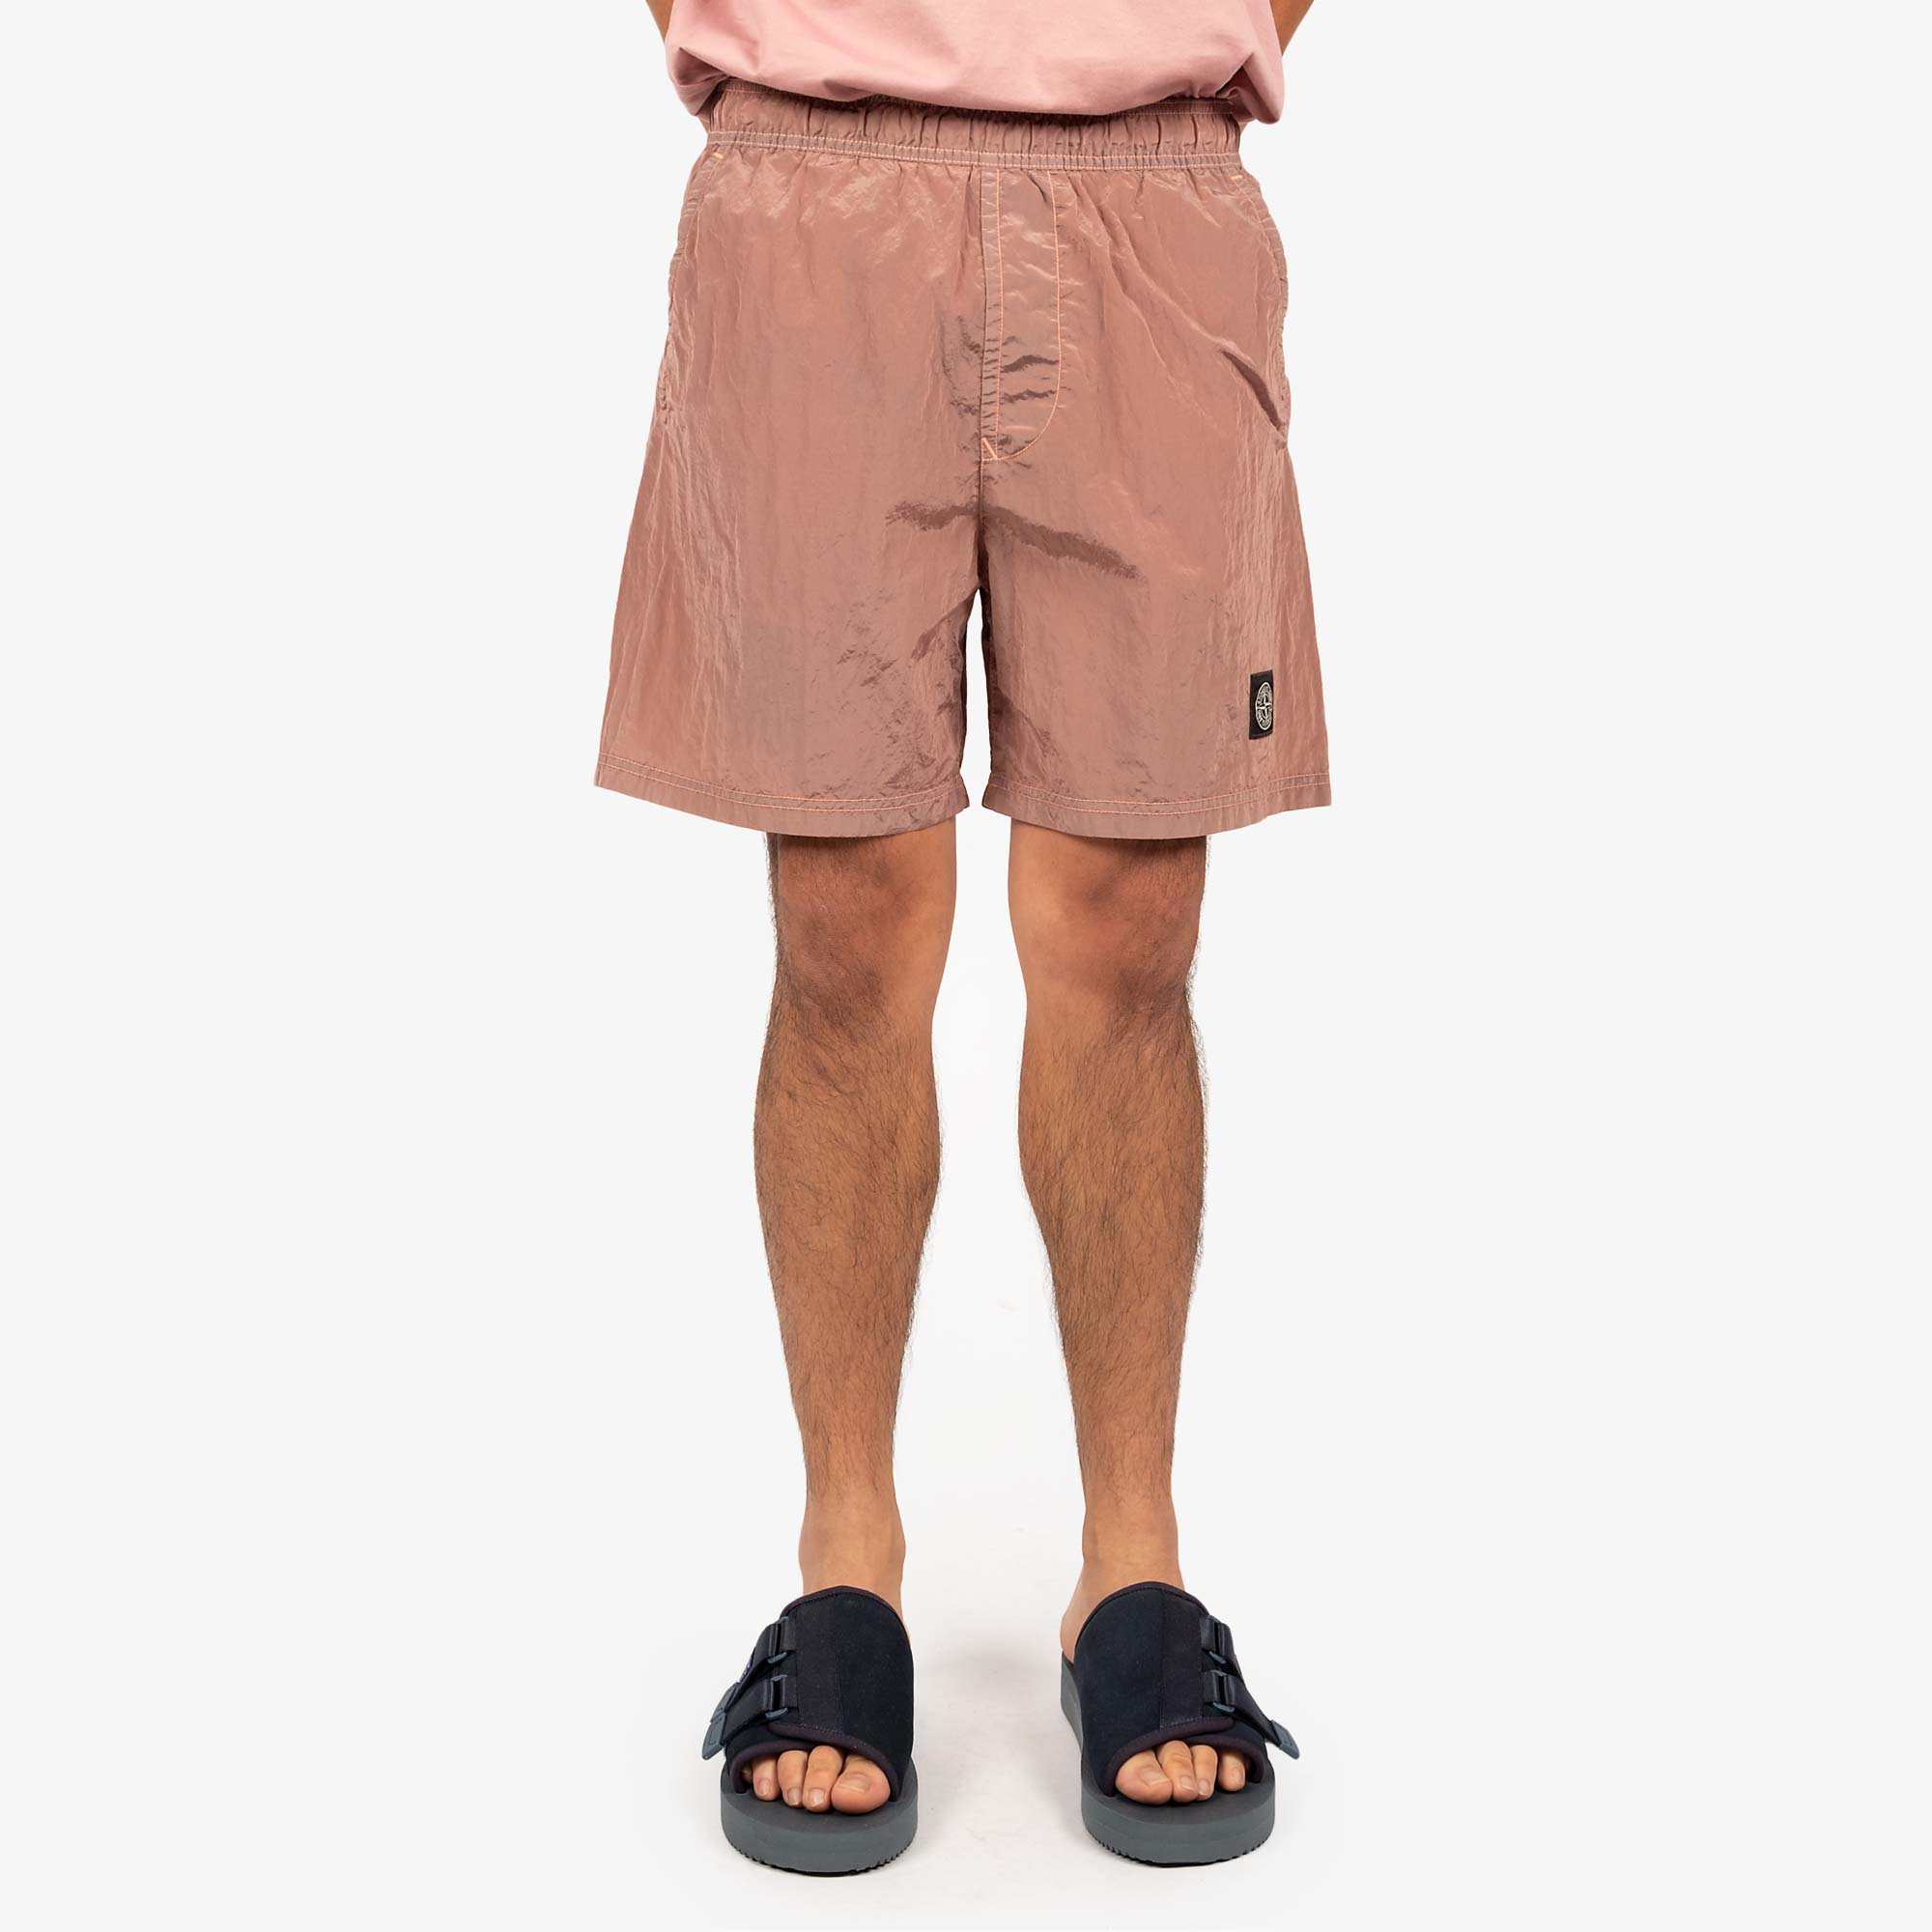 Stone Island Nylon Metal Swim Shorts 7415B0943 Shorts - Rose Quartz 7